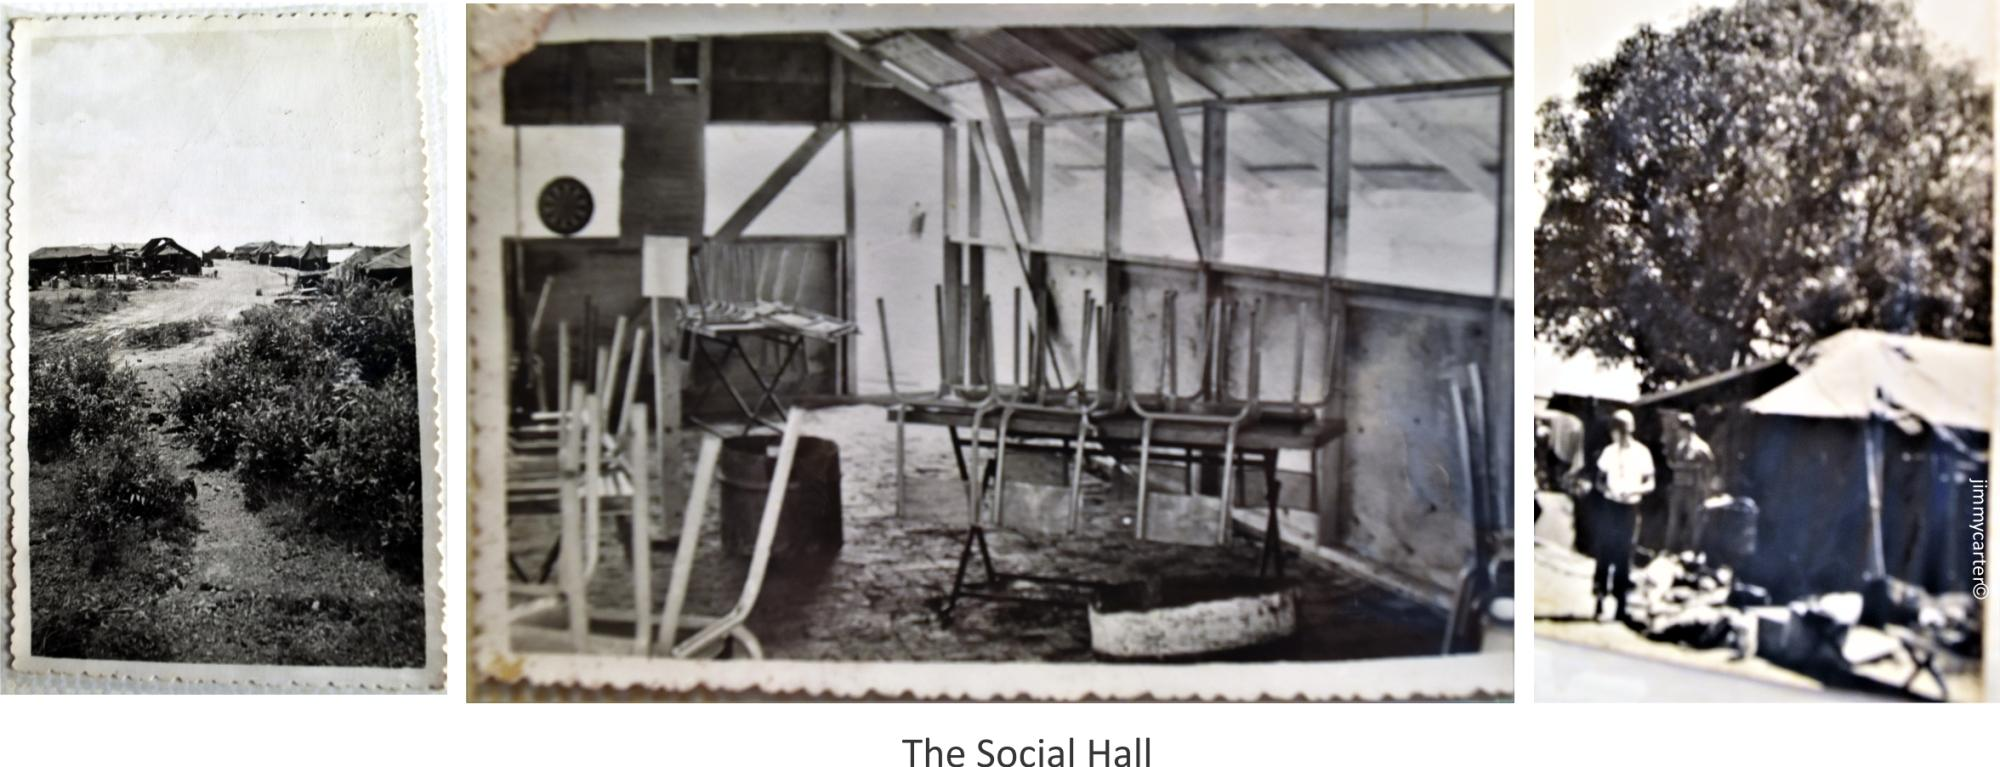 vets_views_social_hall.jpg